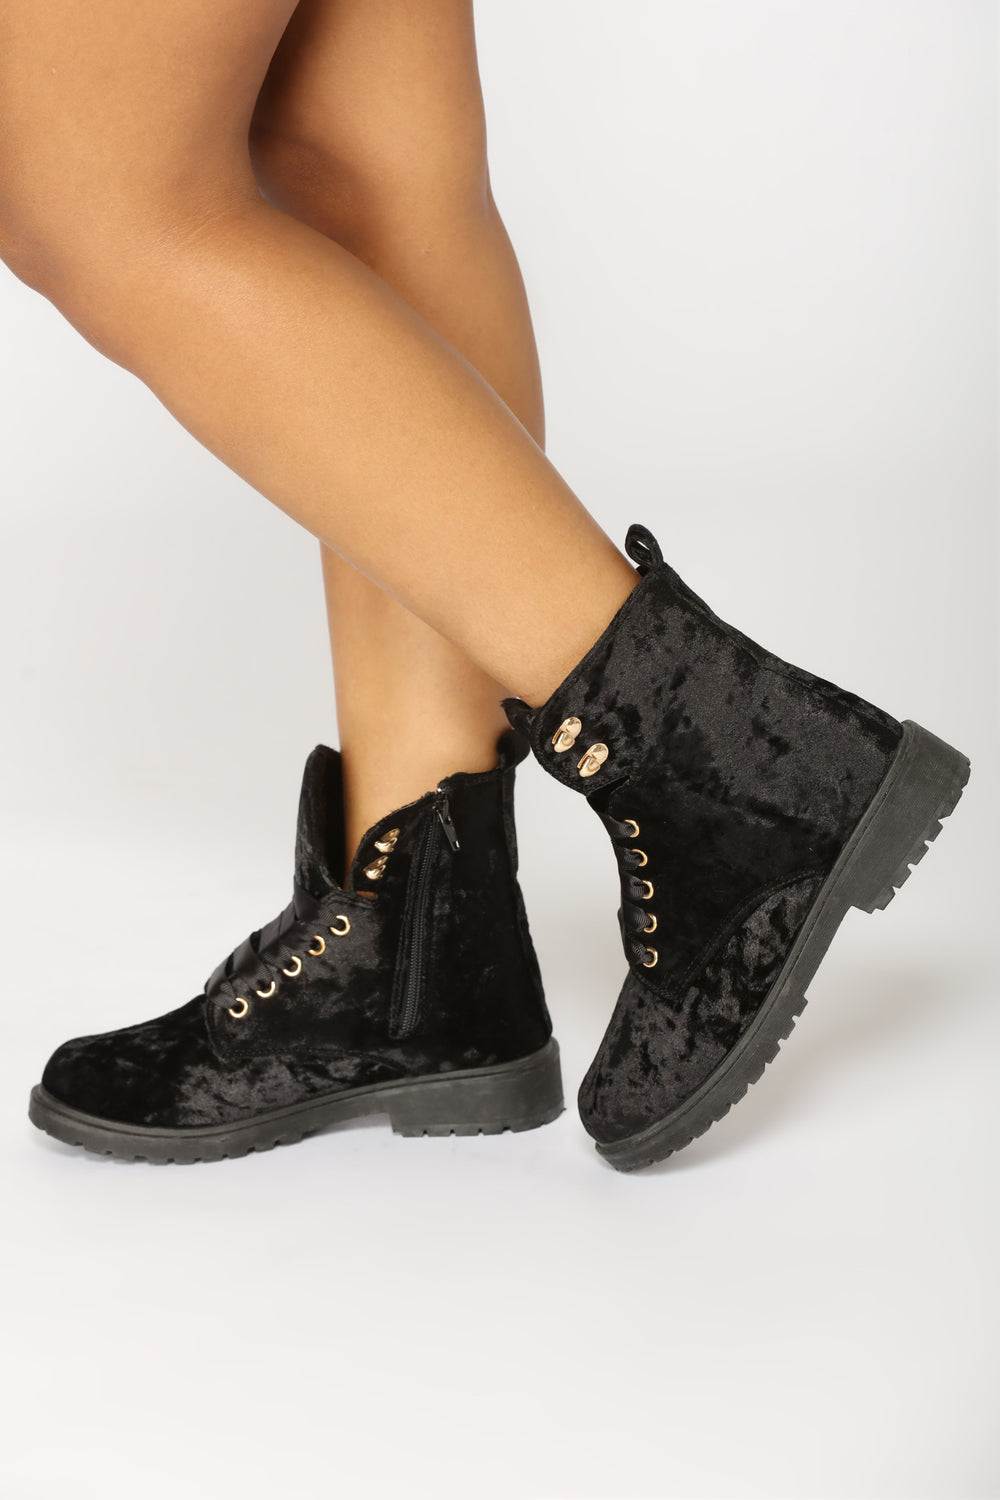 Crushin It Velvet Boot - Black